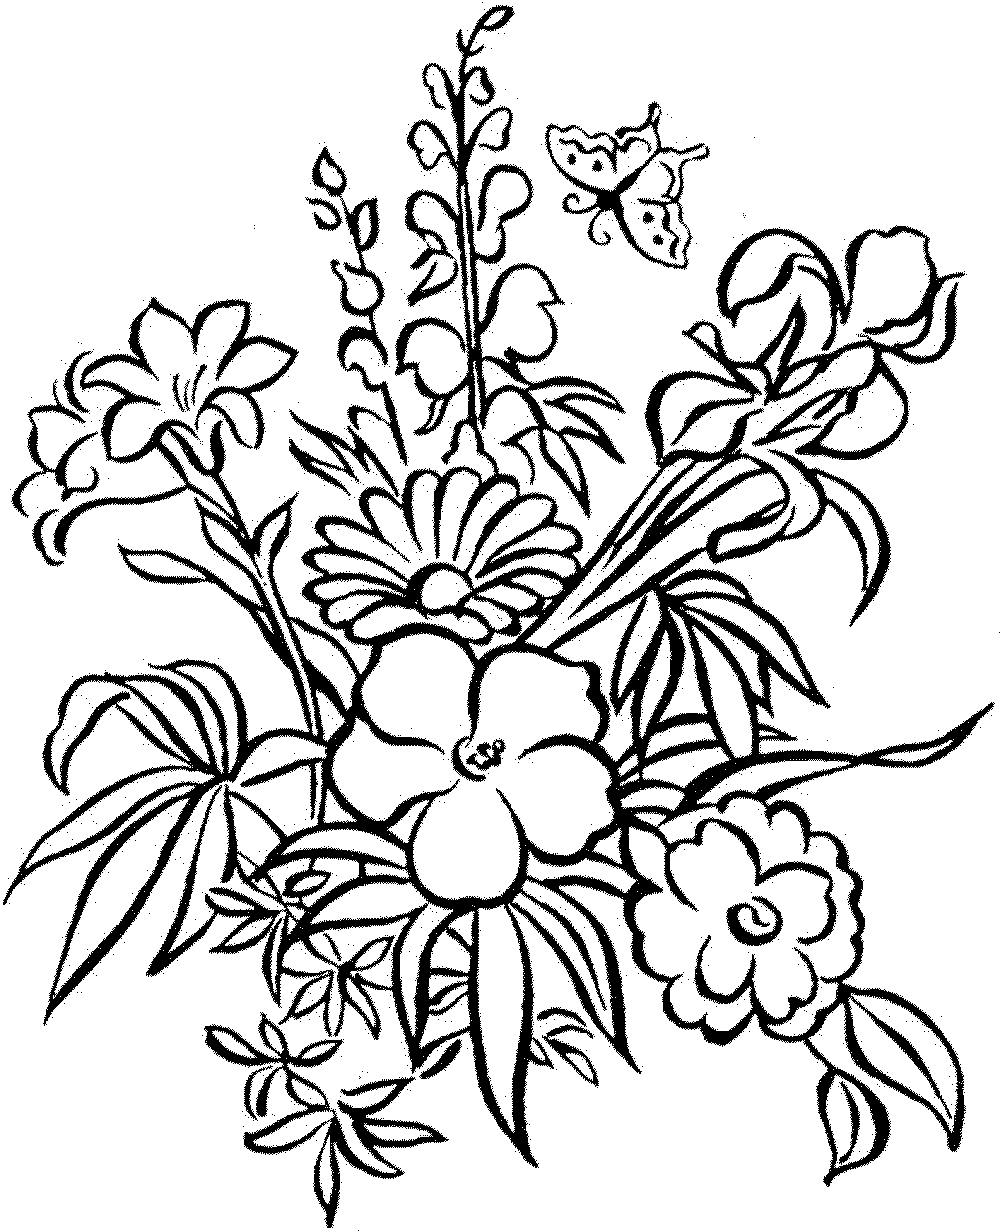 flower colouring pages coloring page world paisley flower pattern portrait flower colouring pages